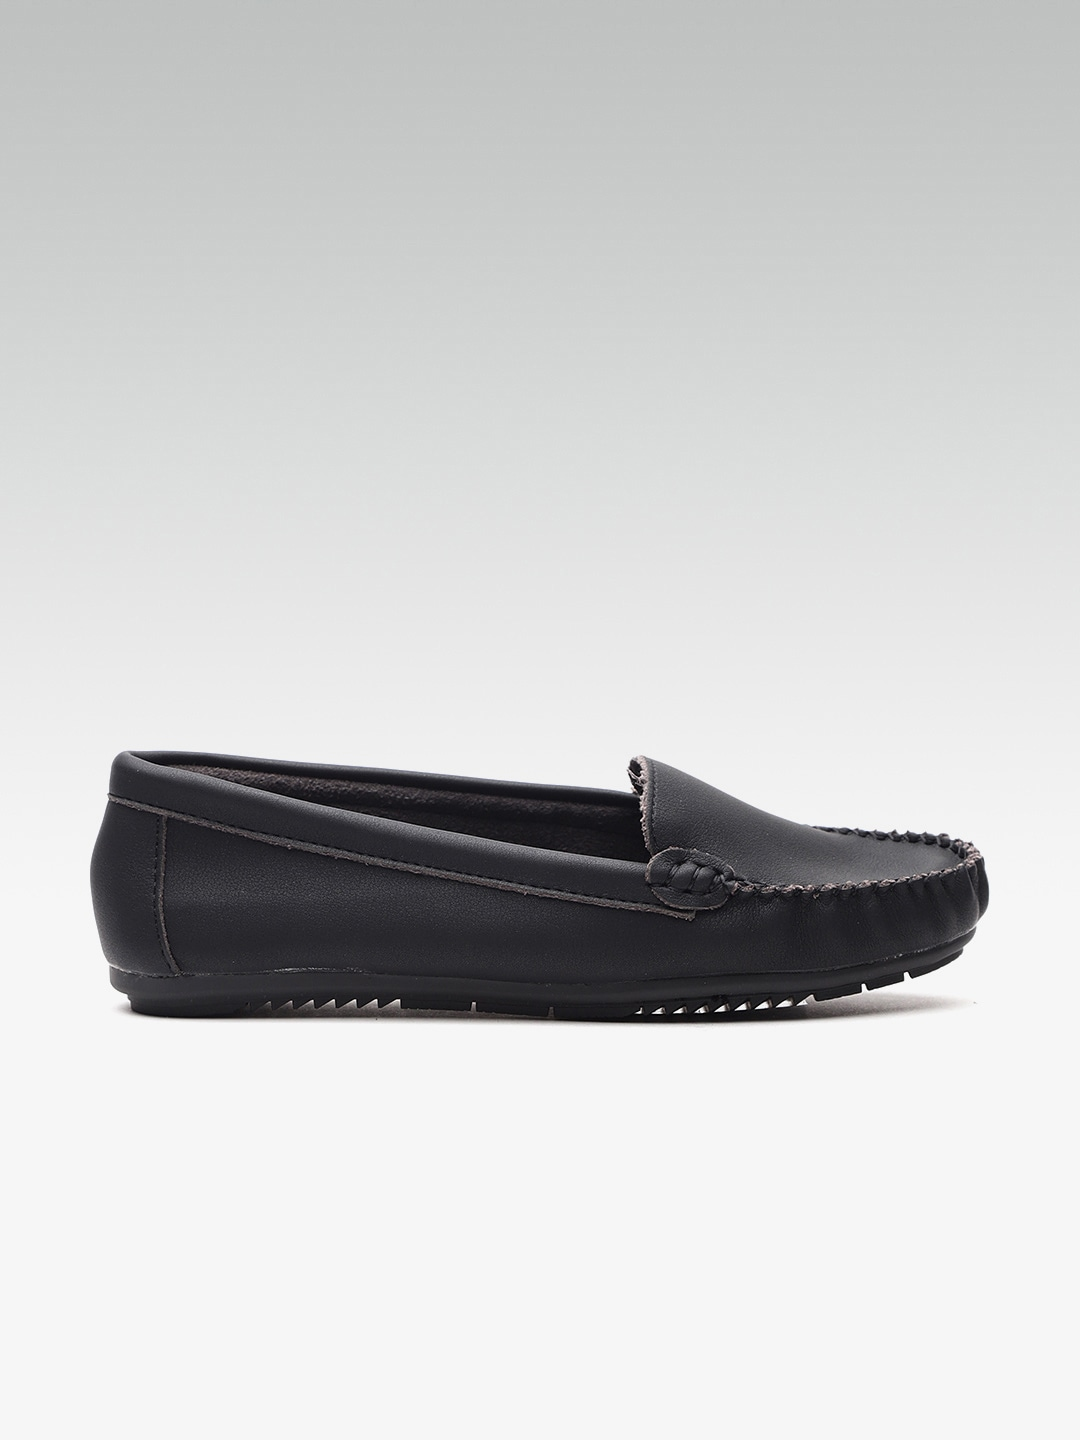 Van Heusen Women Black Loafers image